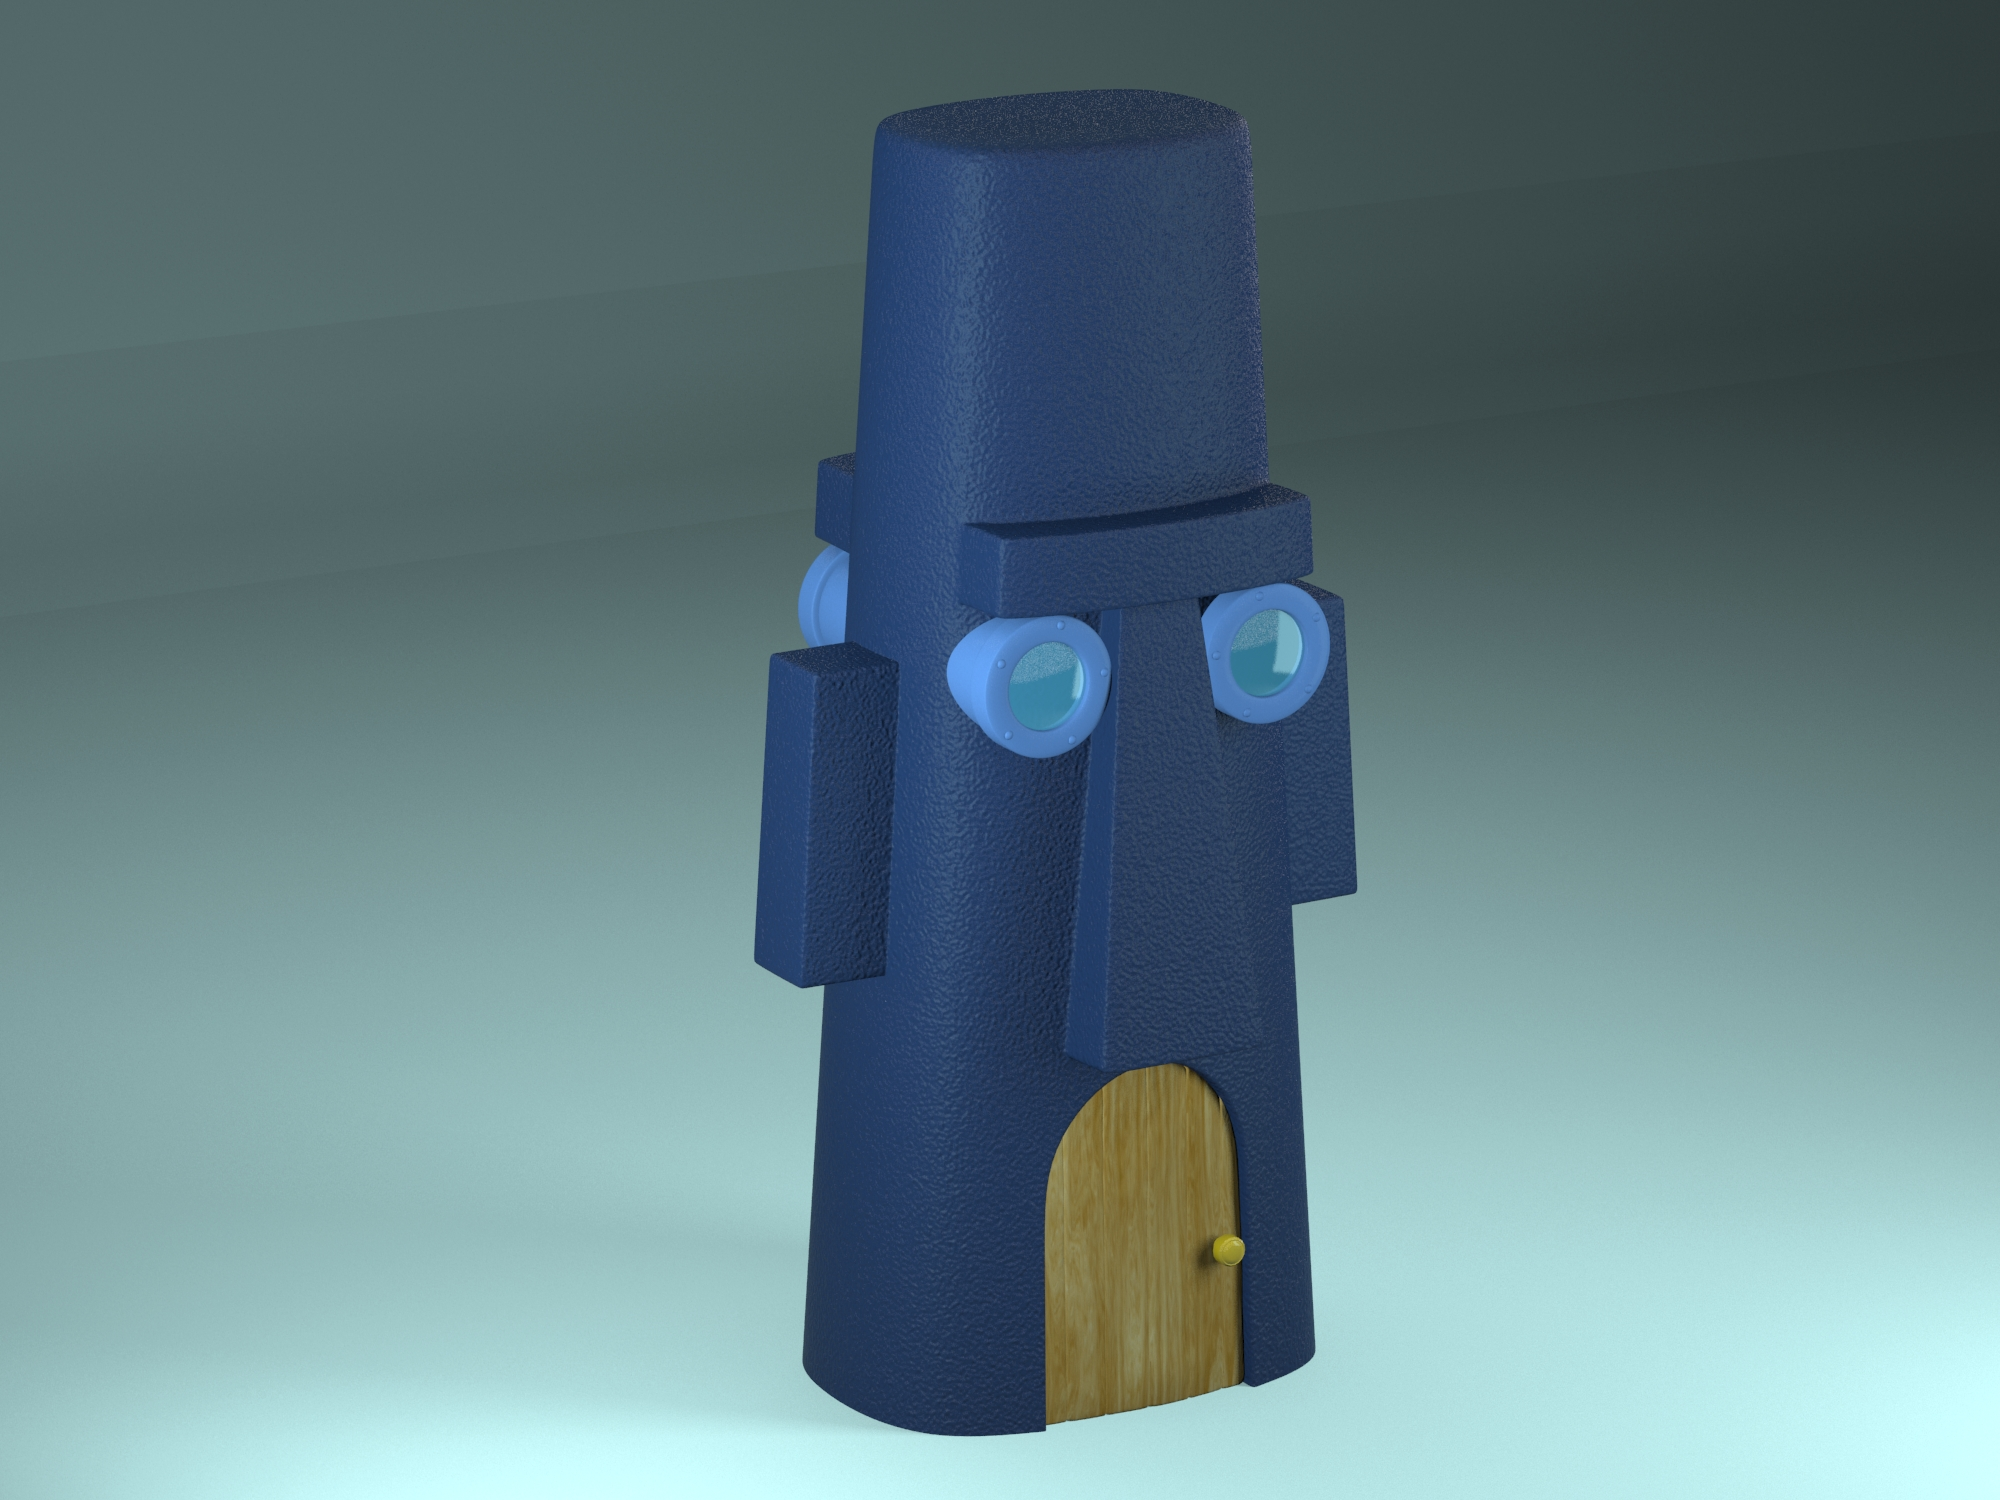 squidward's house 3d model max max c4d fbx lxo obj stl jpeg 263667